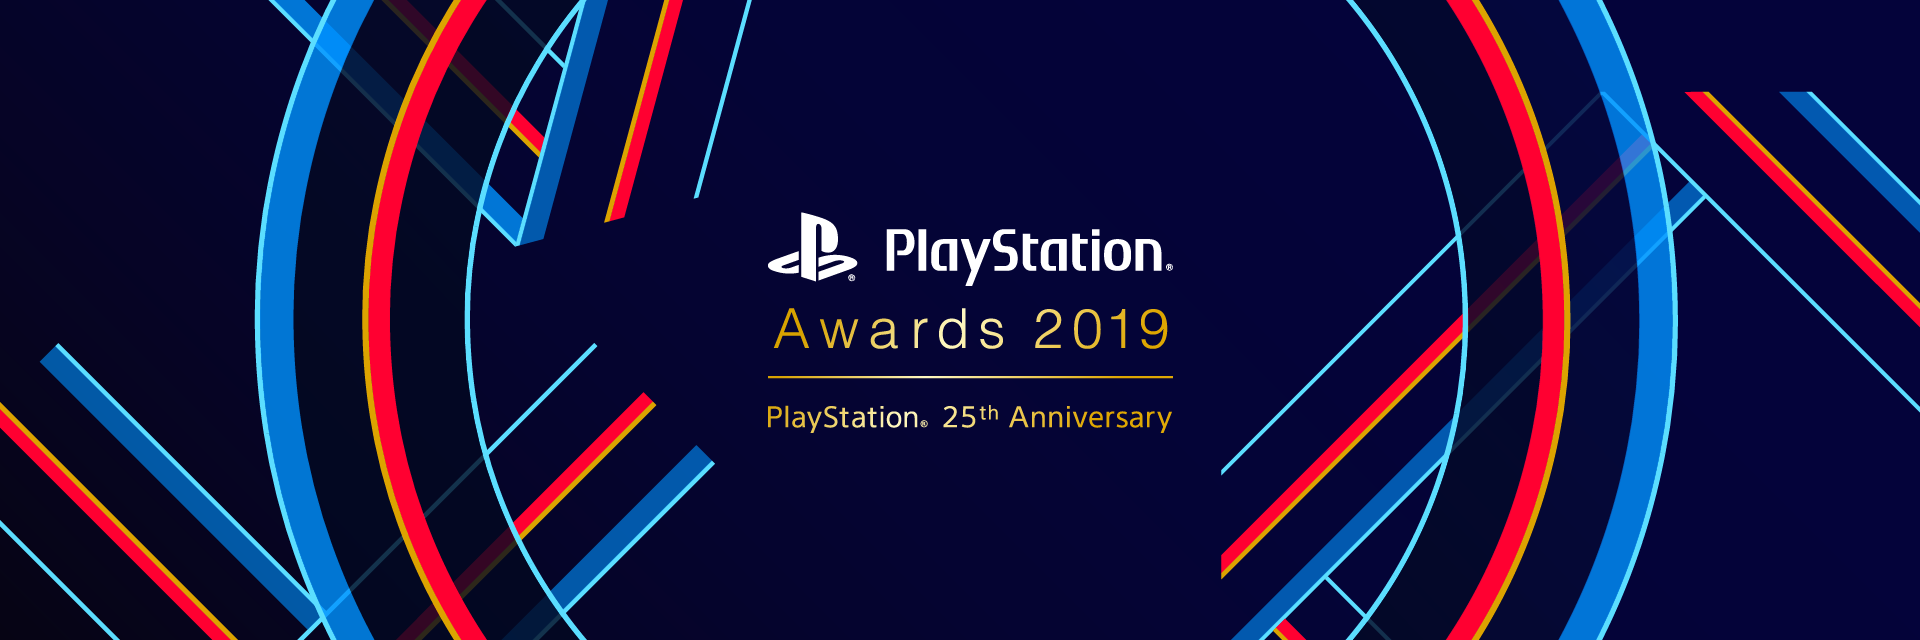 All The Winners at 25th Anniversary of Playstation Awards 2019 19